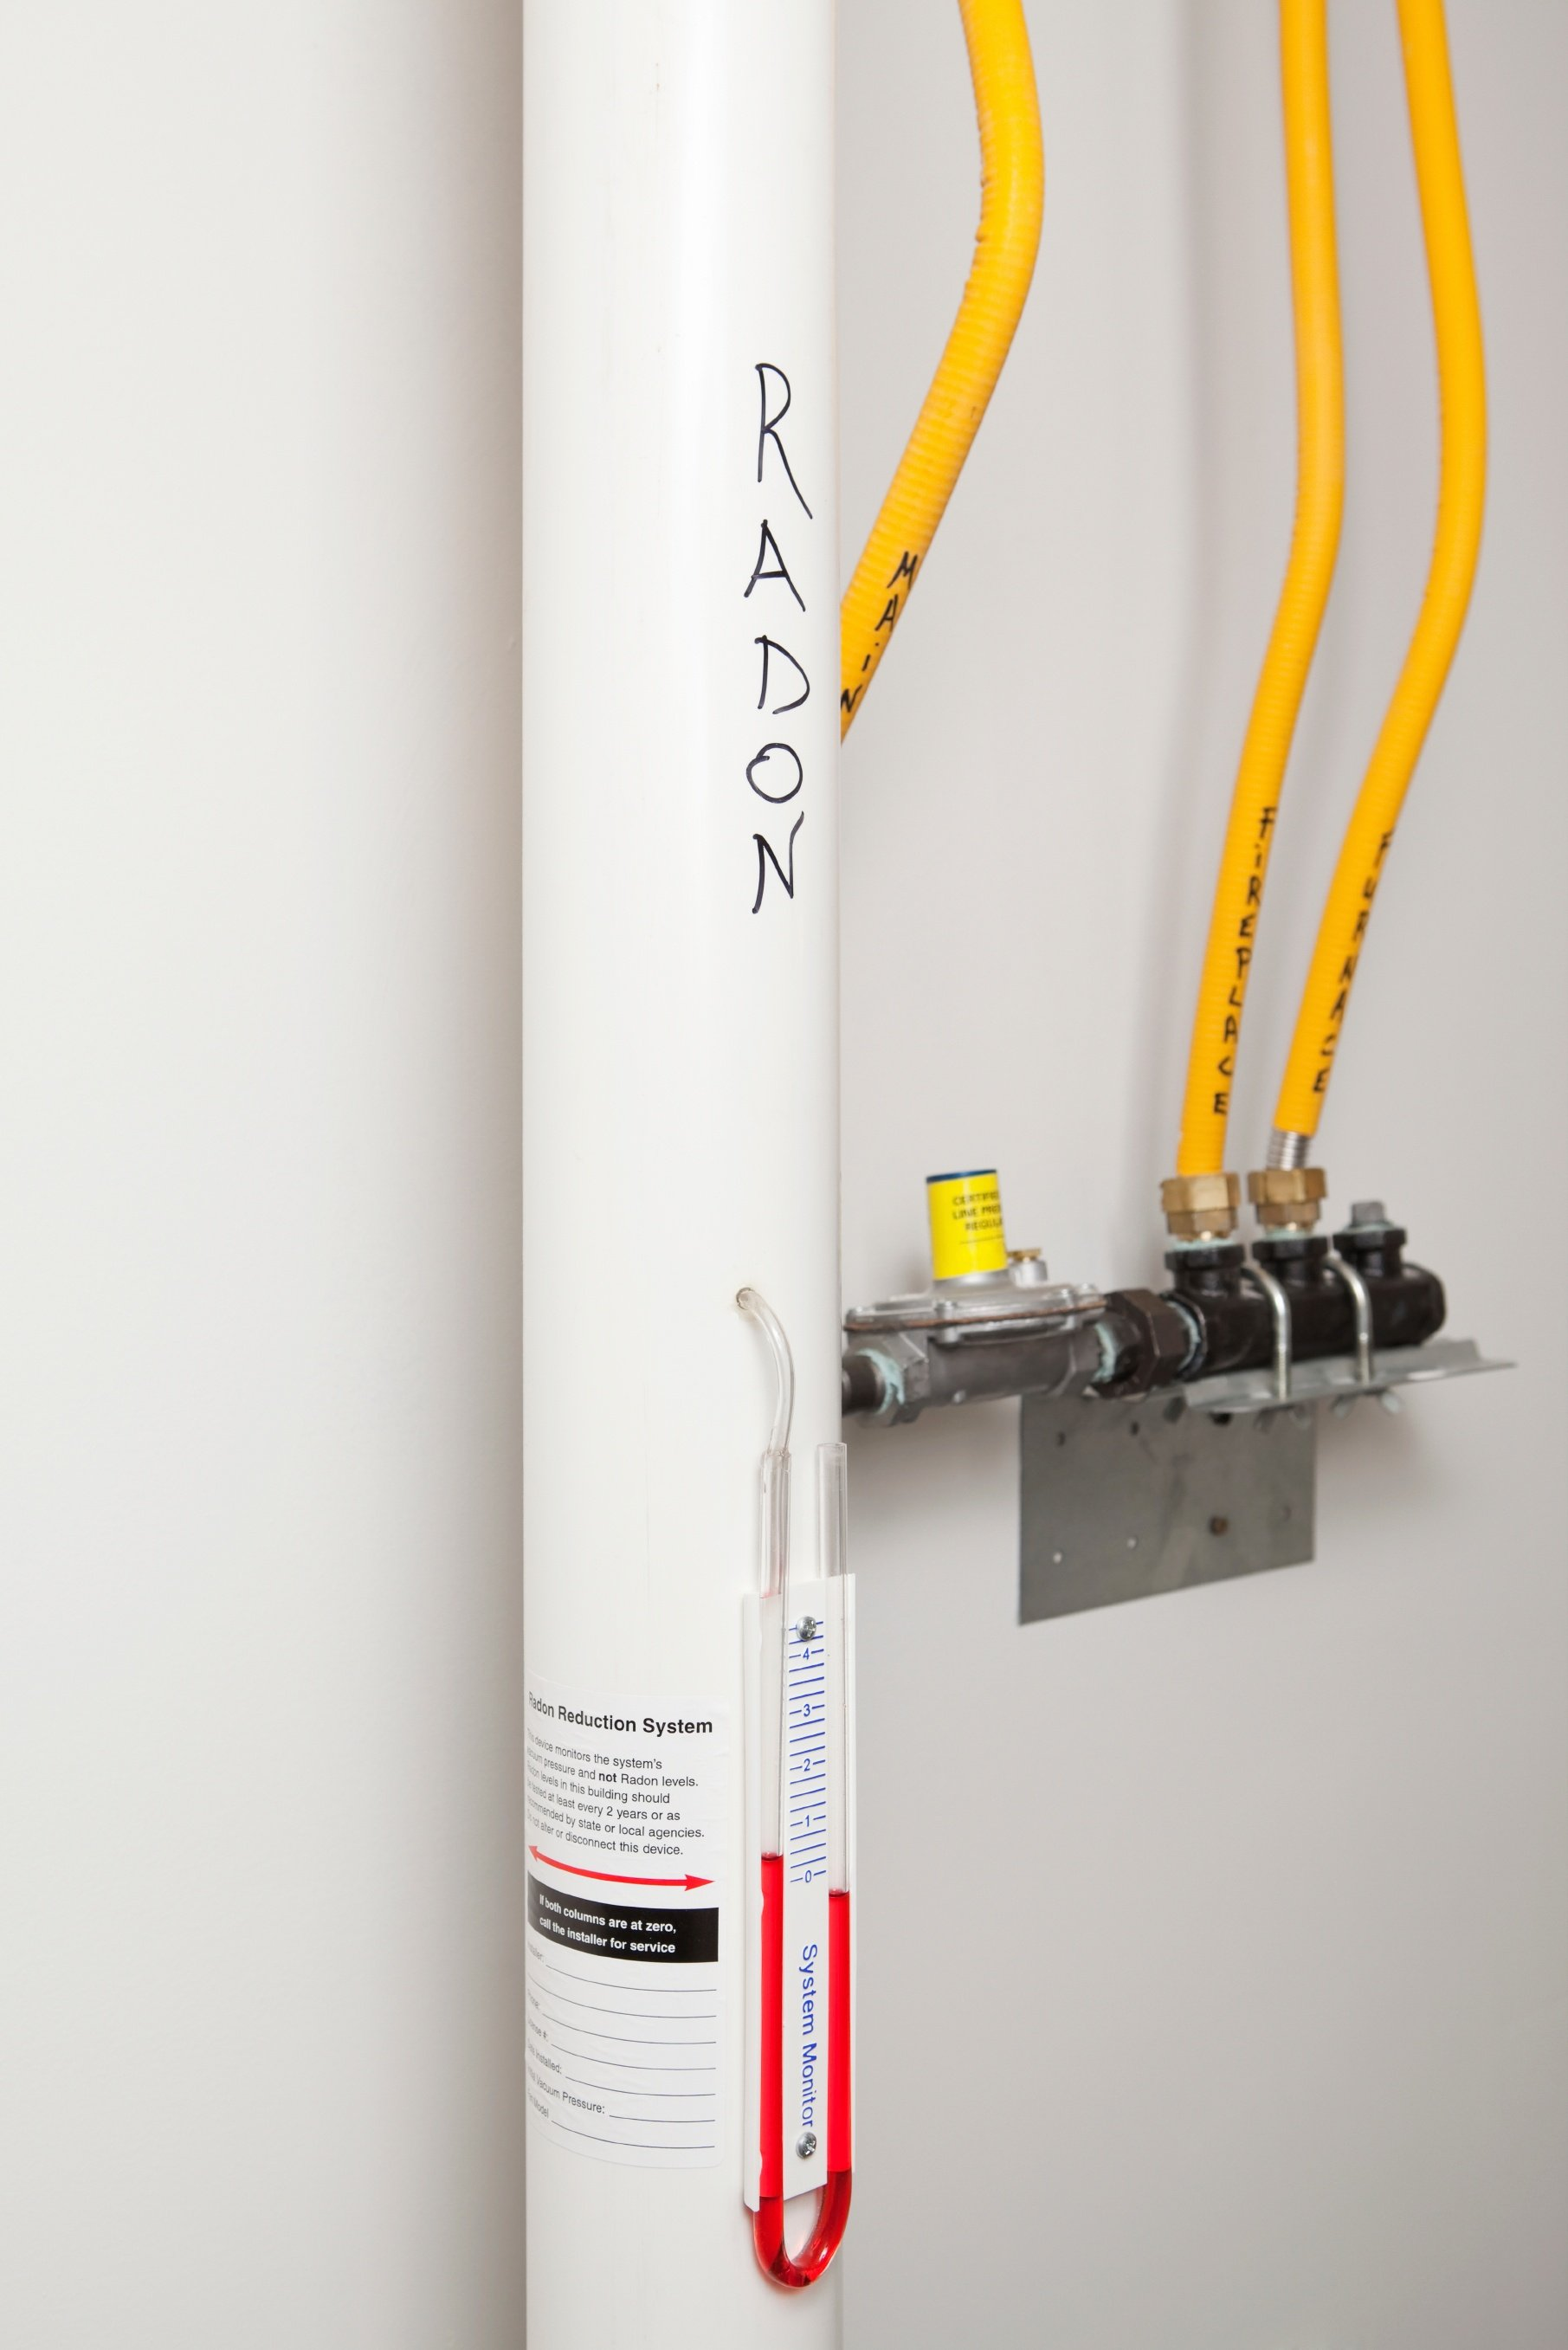 What Is A Radon Mitigation System